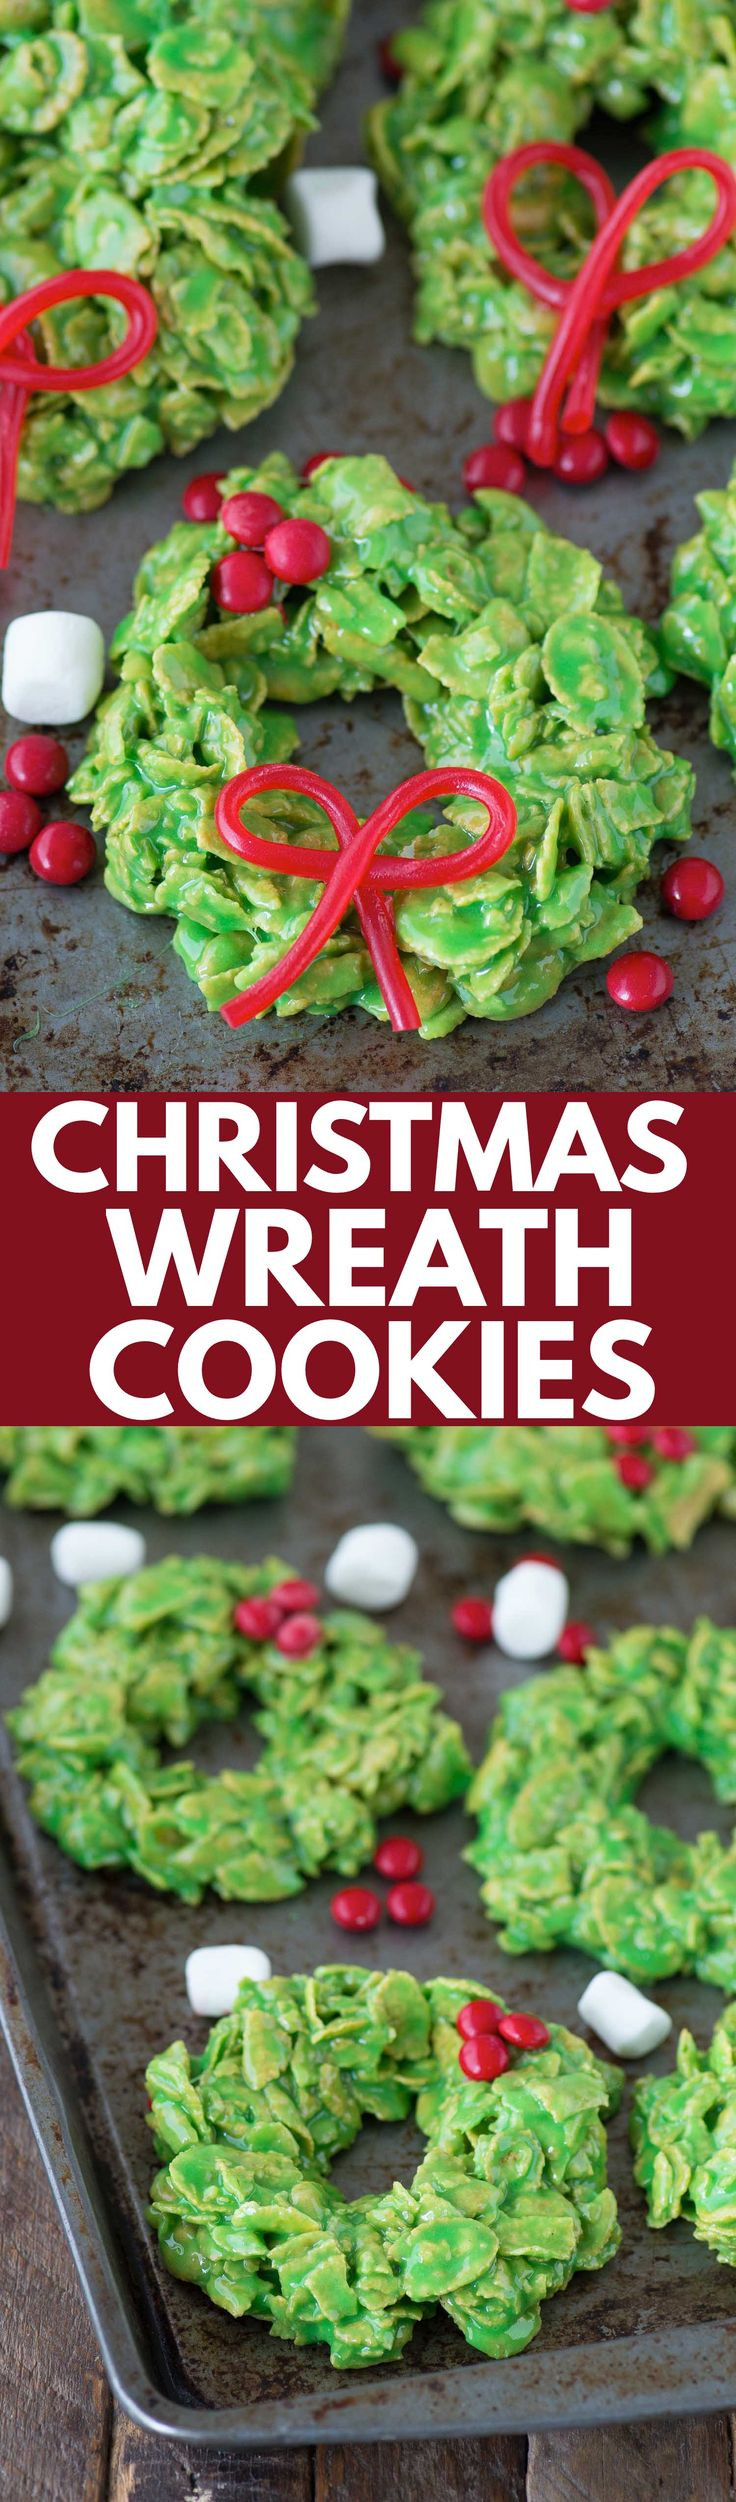 Cornflake Christmas Wreath Cookies With Corn Syrup  1000 ideas about Corn Flakes on Pinterest